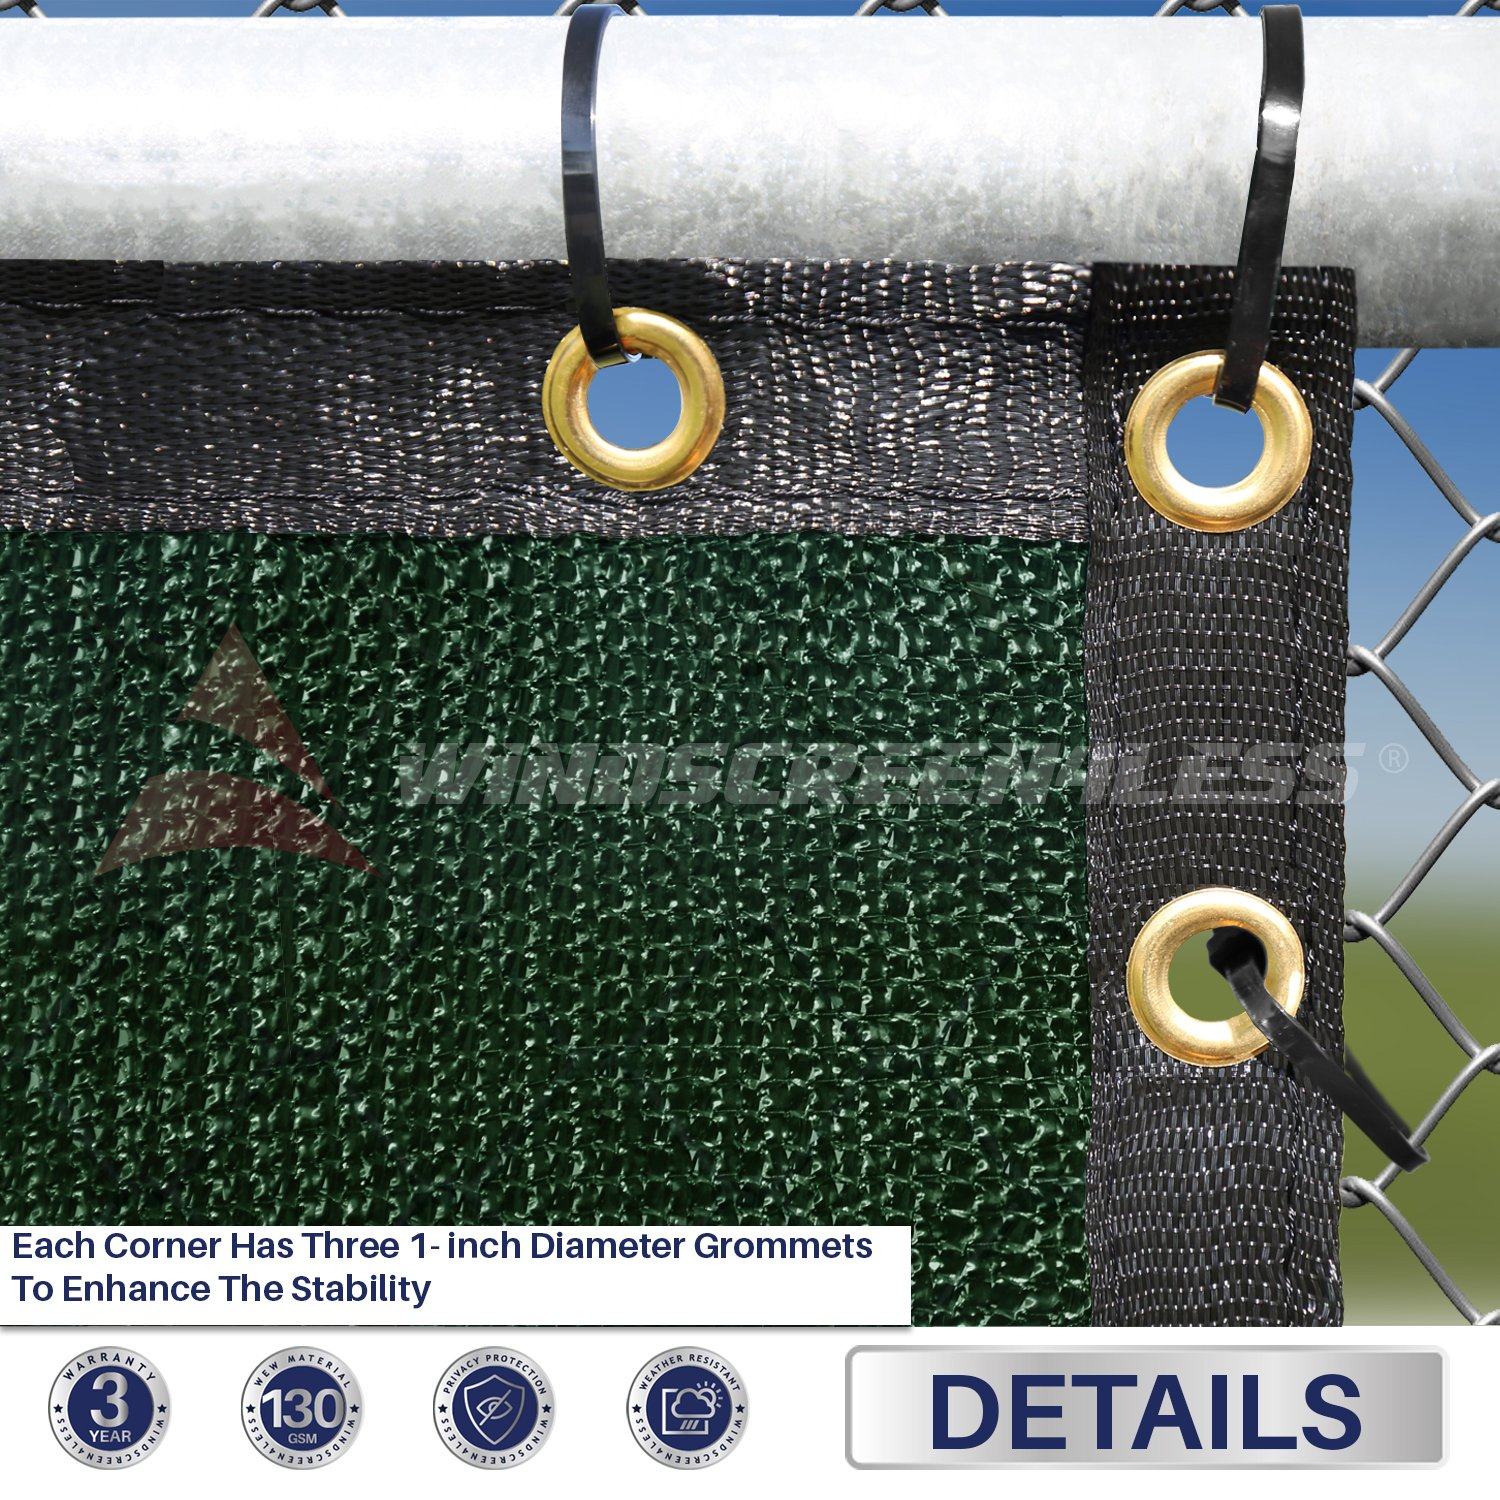 Windscreen4less Heavy Duty Privacy Screen Fence in Color Solid Green 4' x 50' Brass Grommets w/3-Year Warranty 150 GSM (Customized Sizes Available) by Windscreen4less (Image #2)